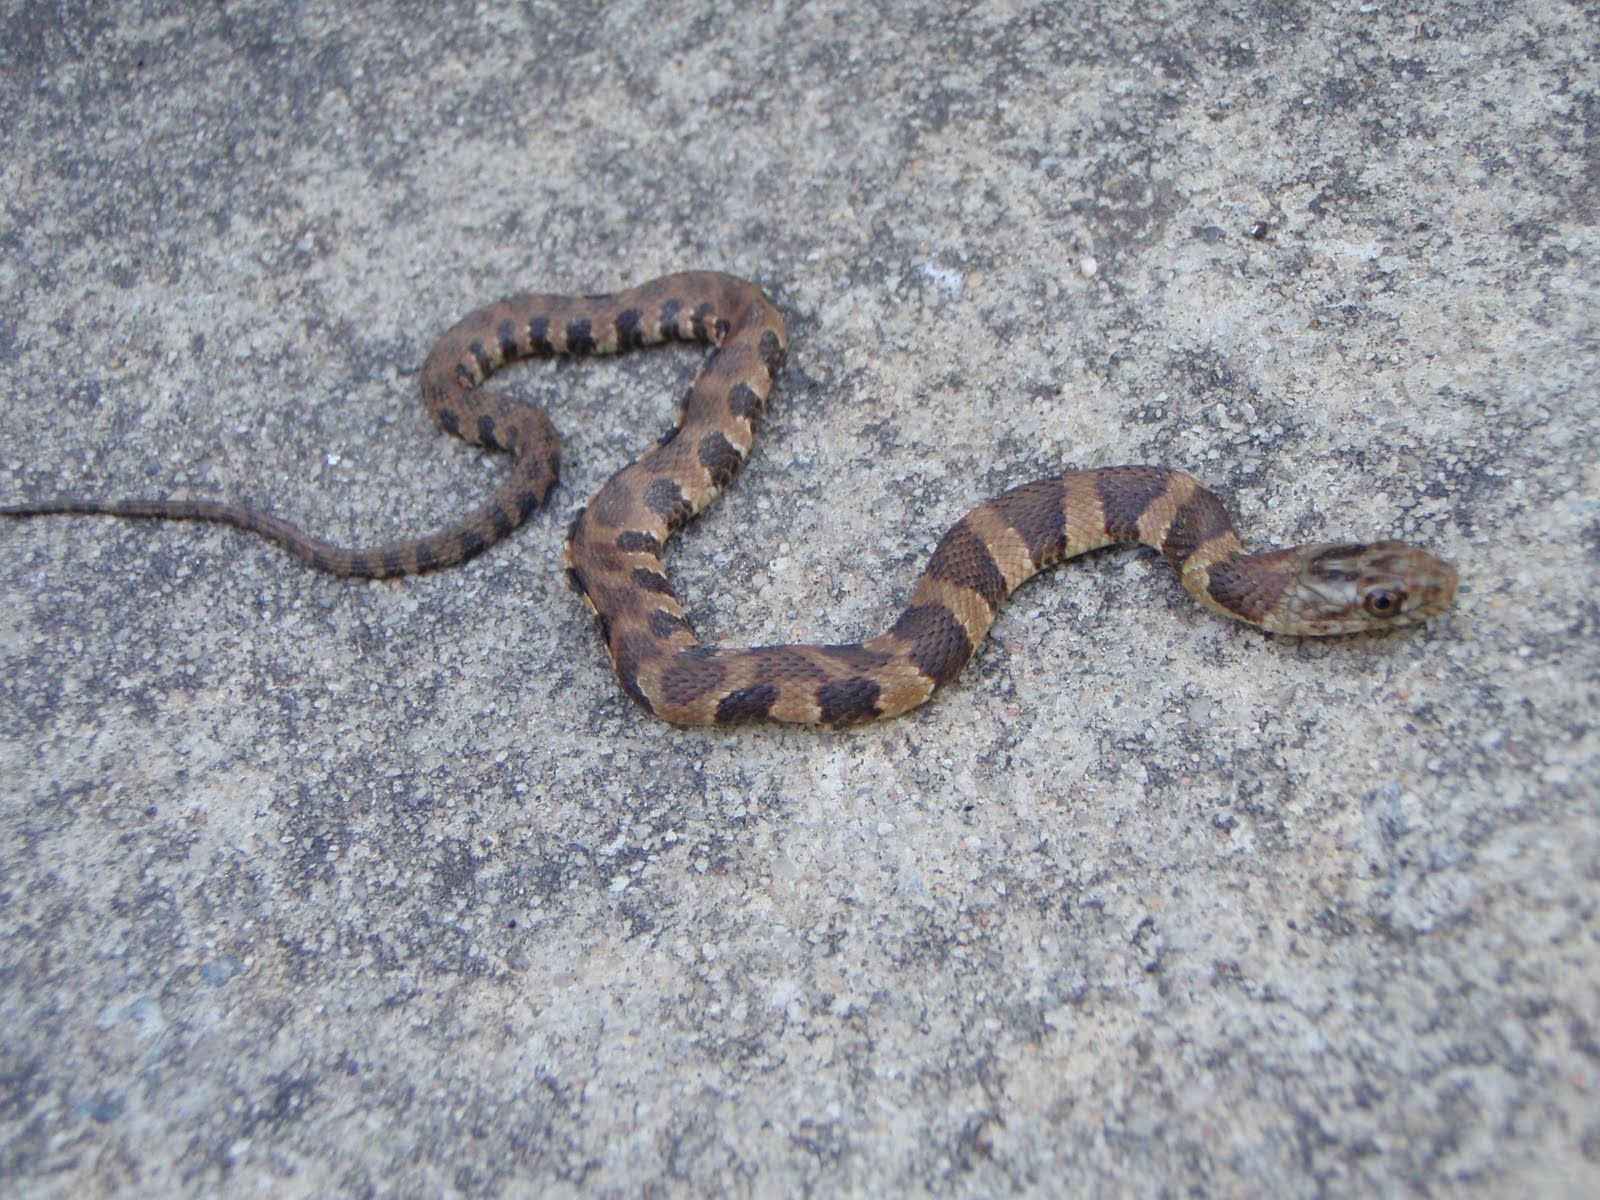 Baby Water Moccasin Snake Pictures | www.imgkid.com - The ...